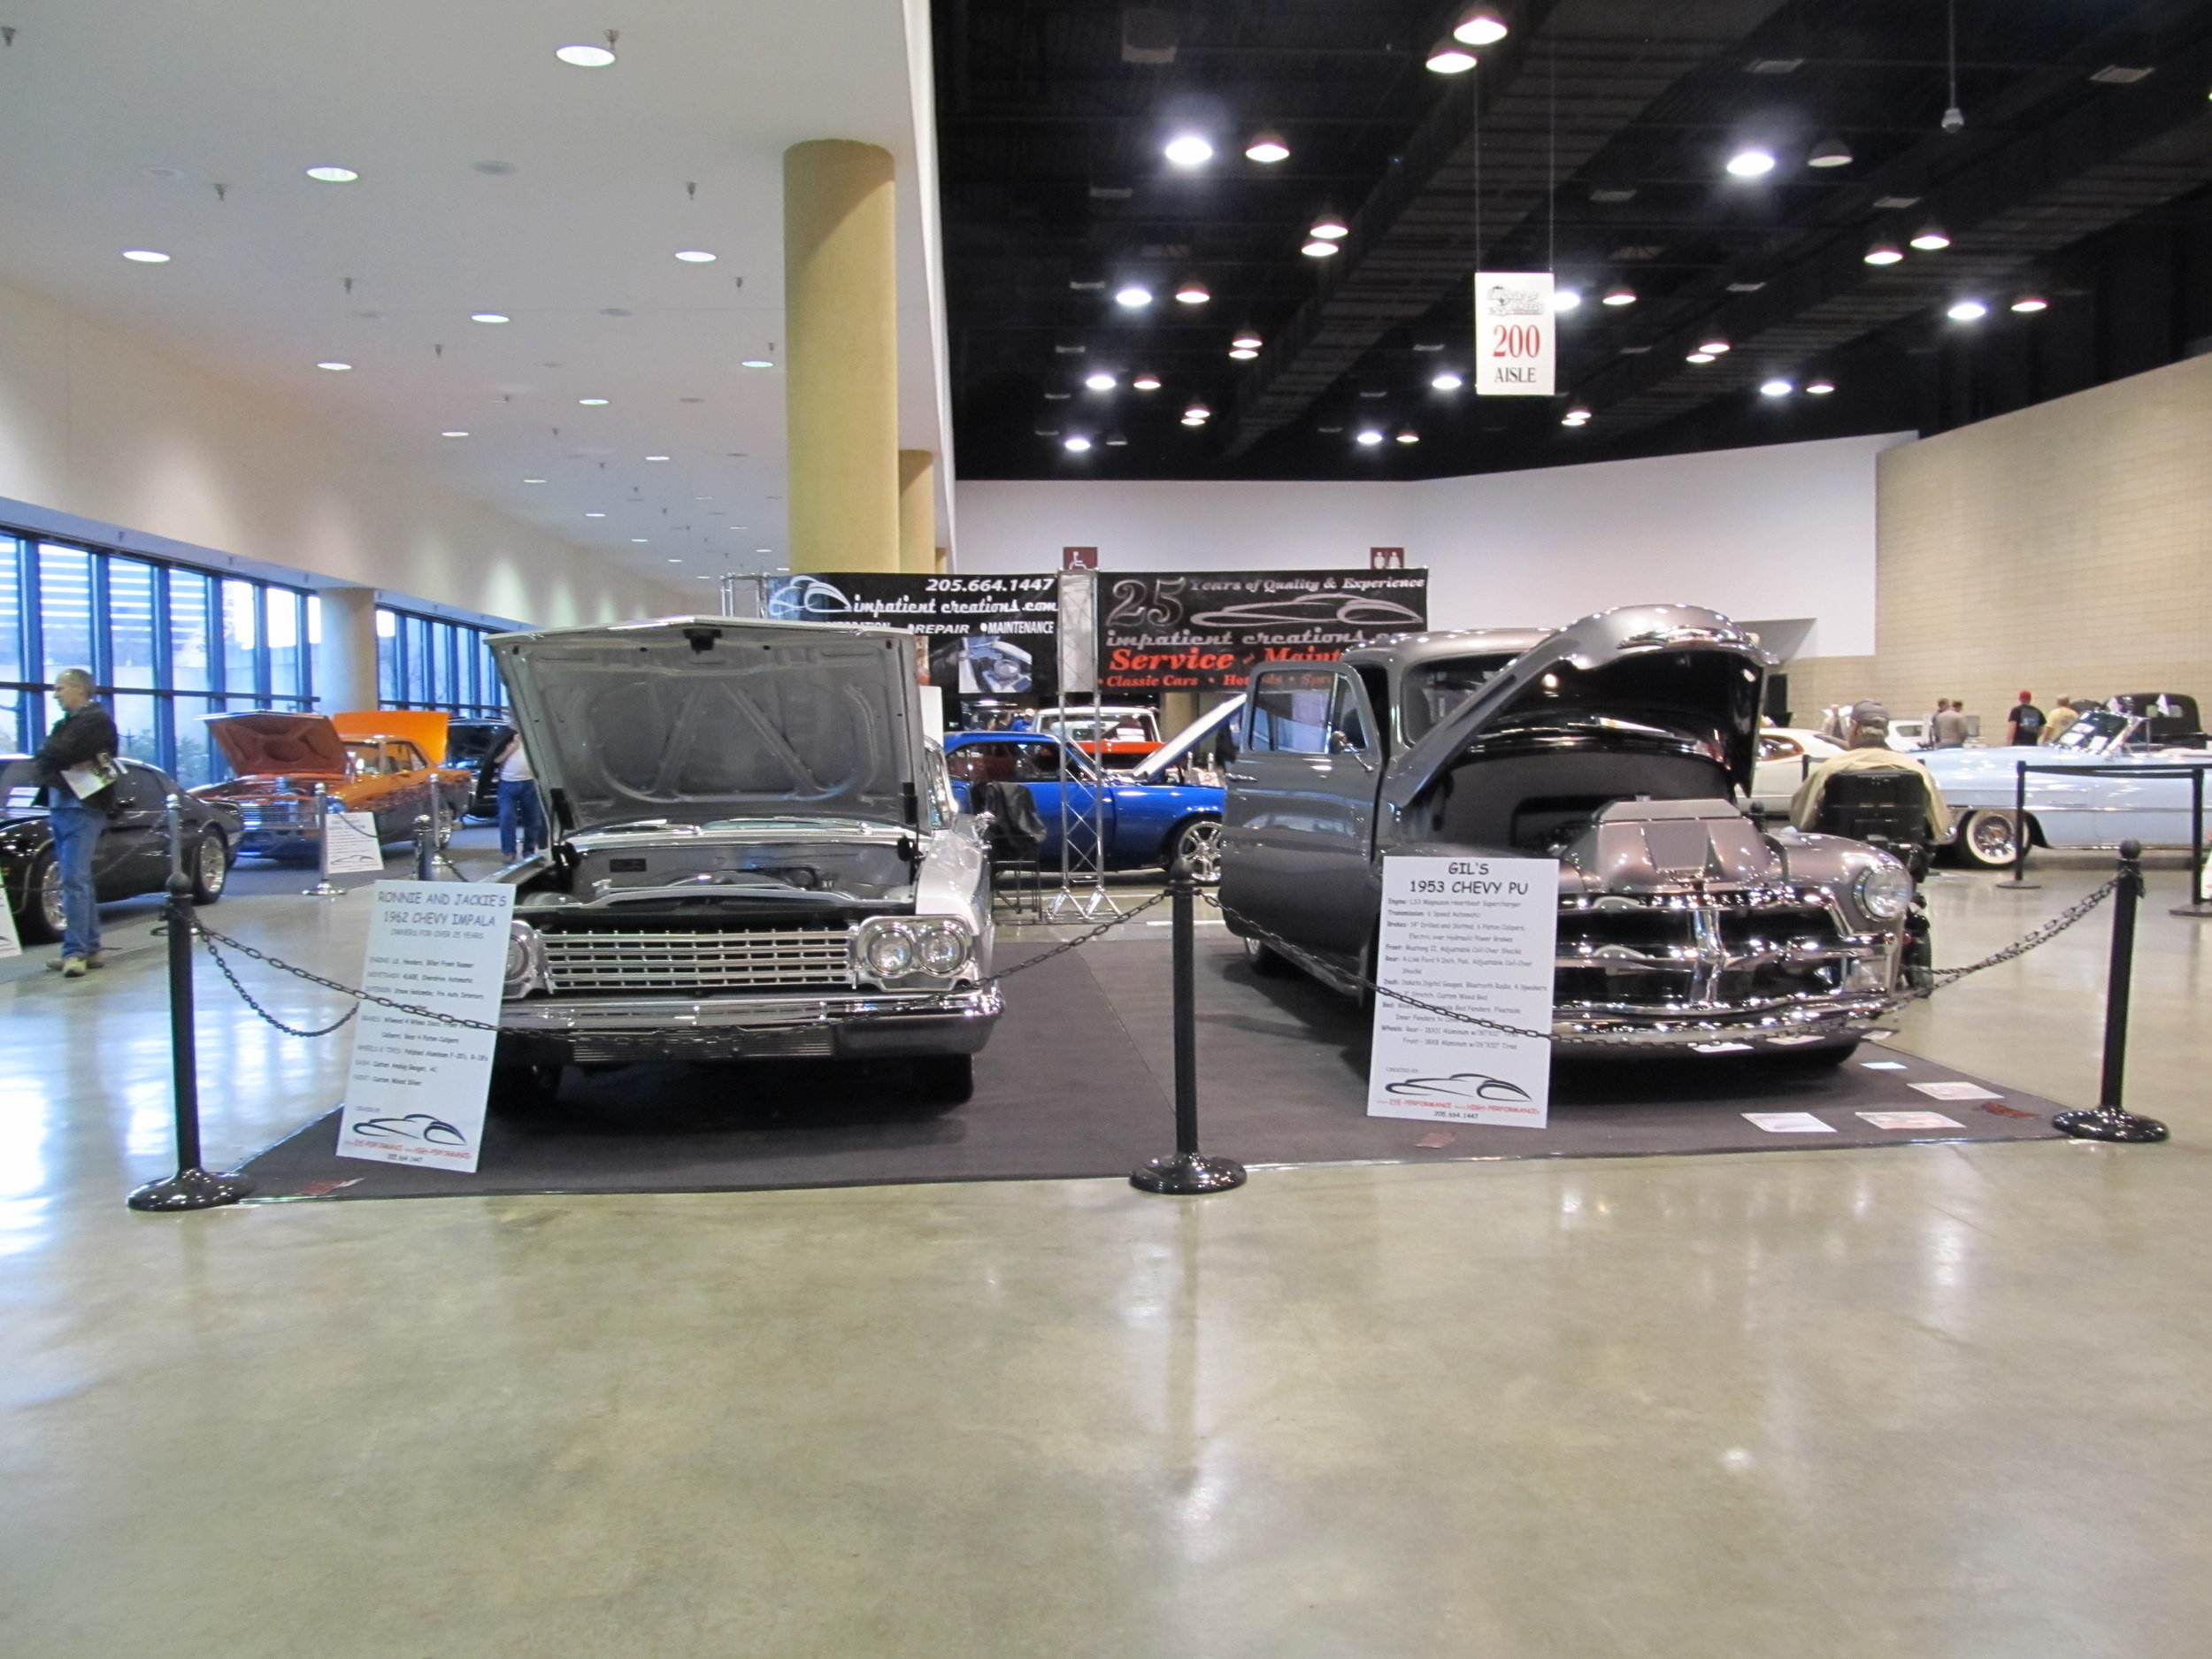 Two car's Impatient Creations featured at World of Wheels